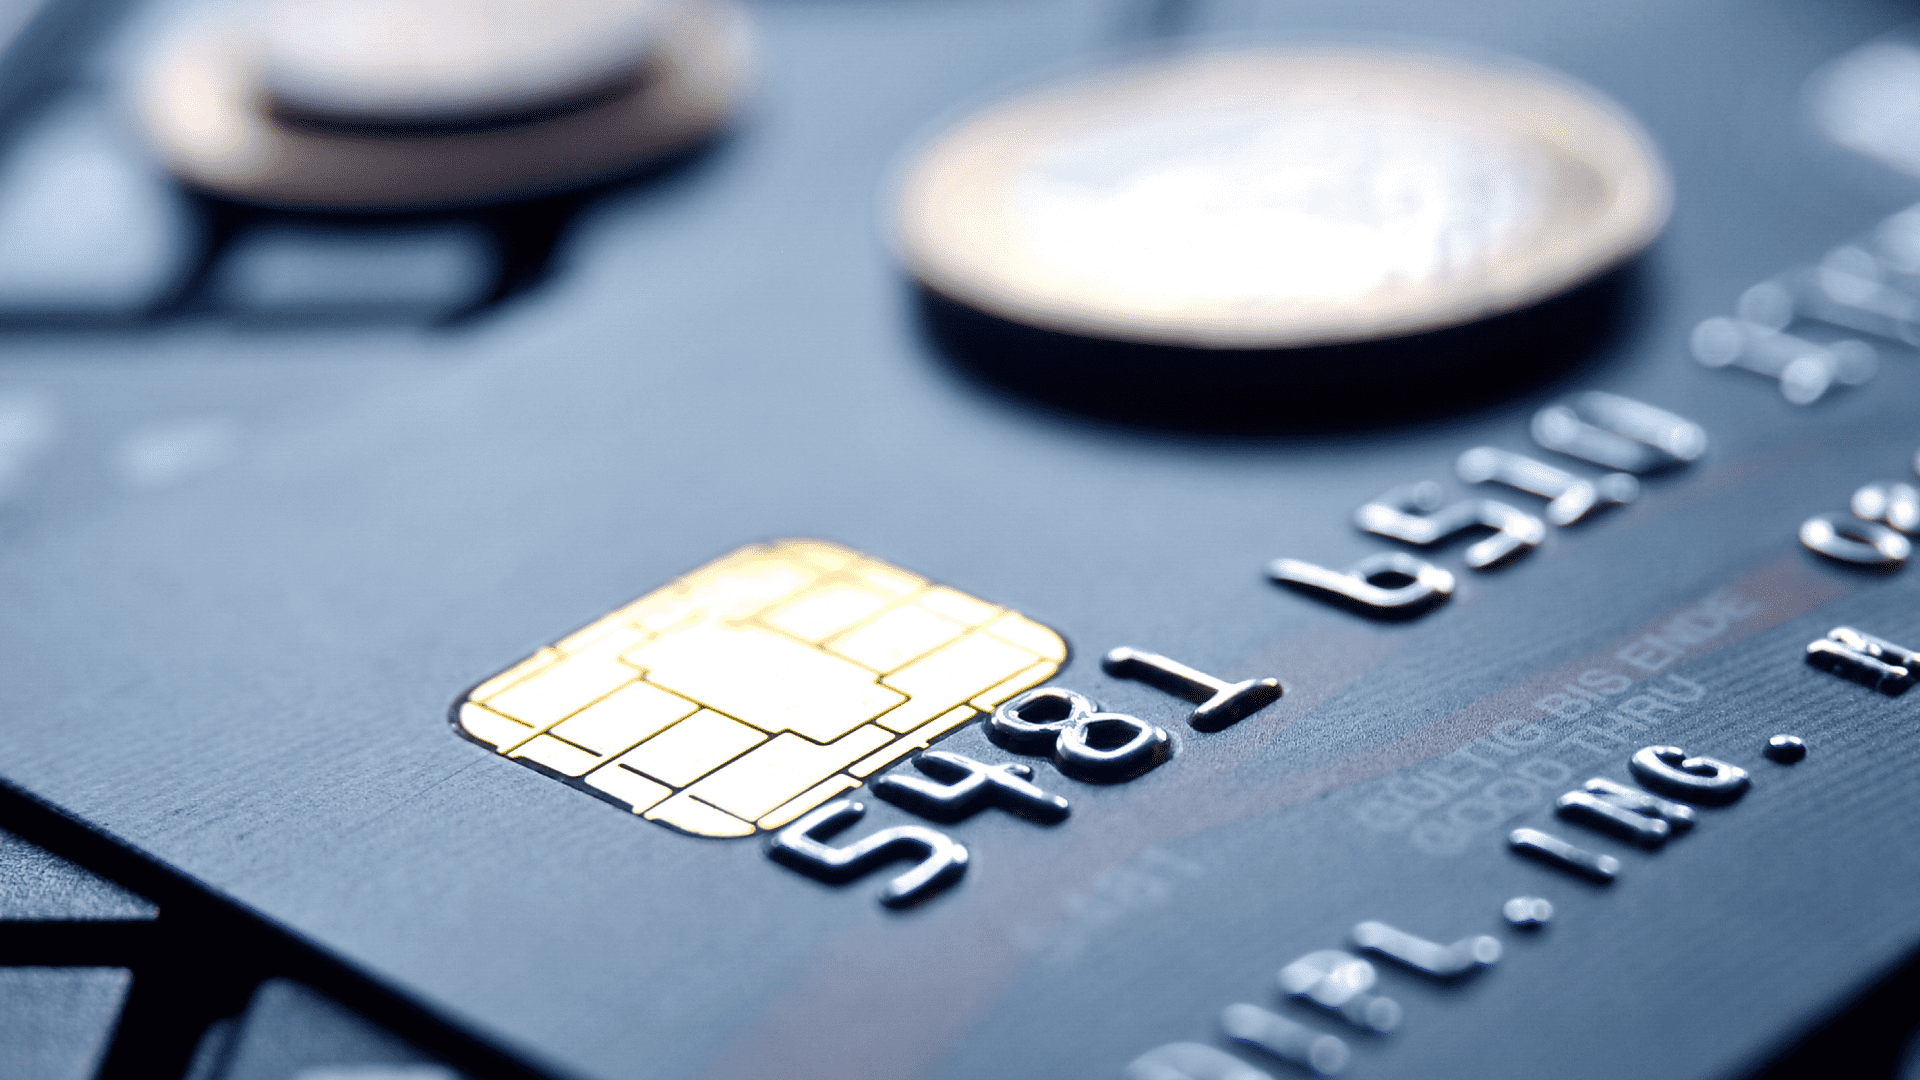 M-commerce payment options: 3 critical issues to consider